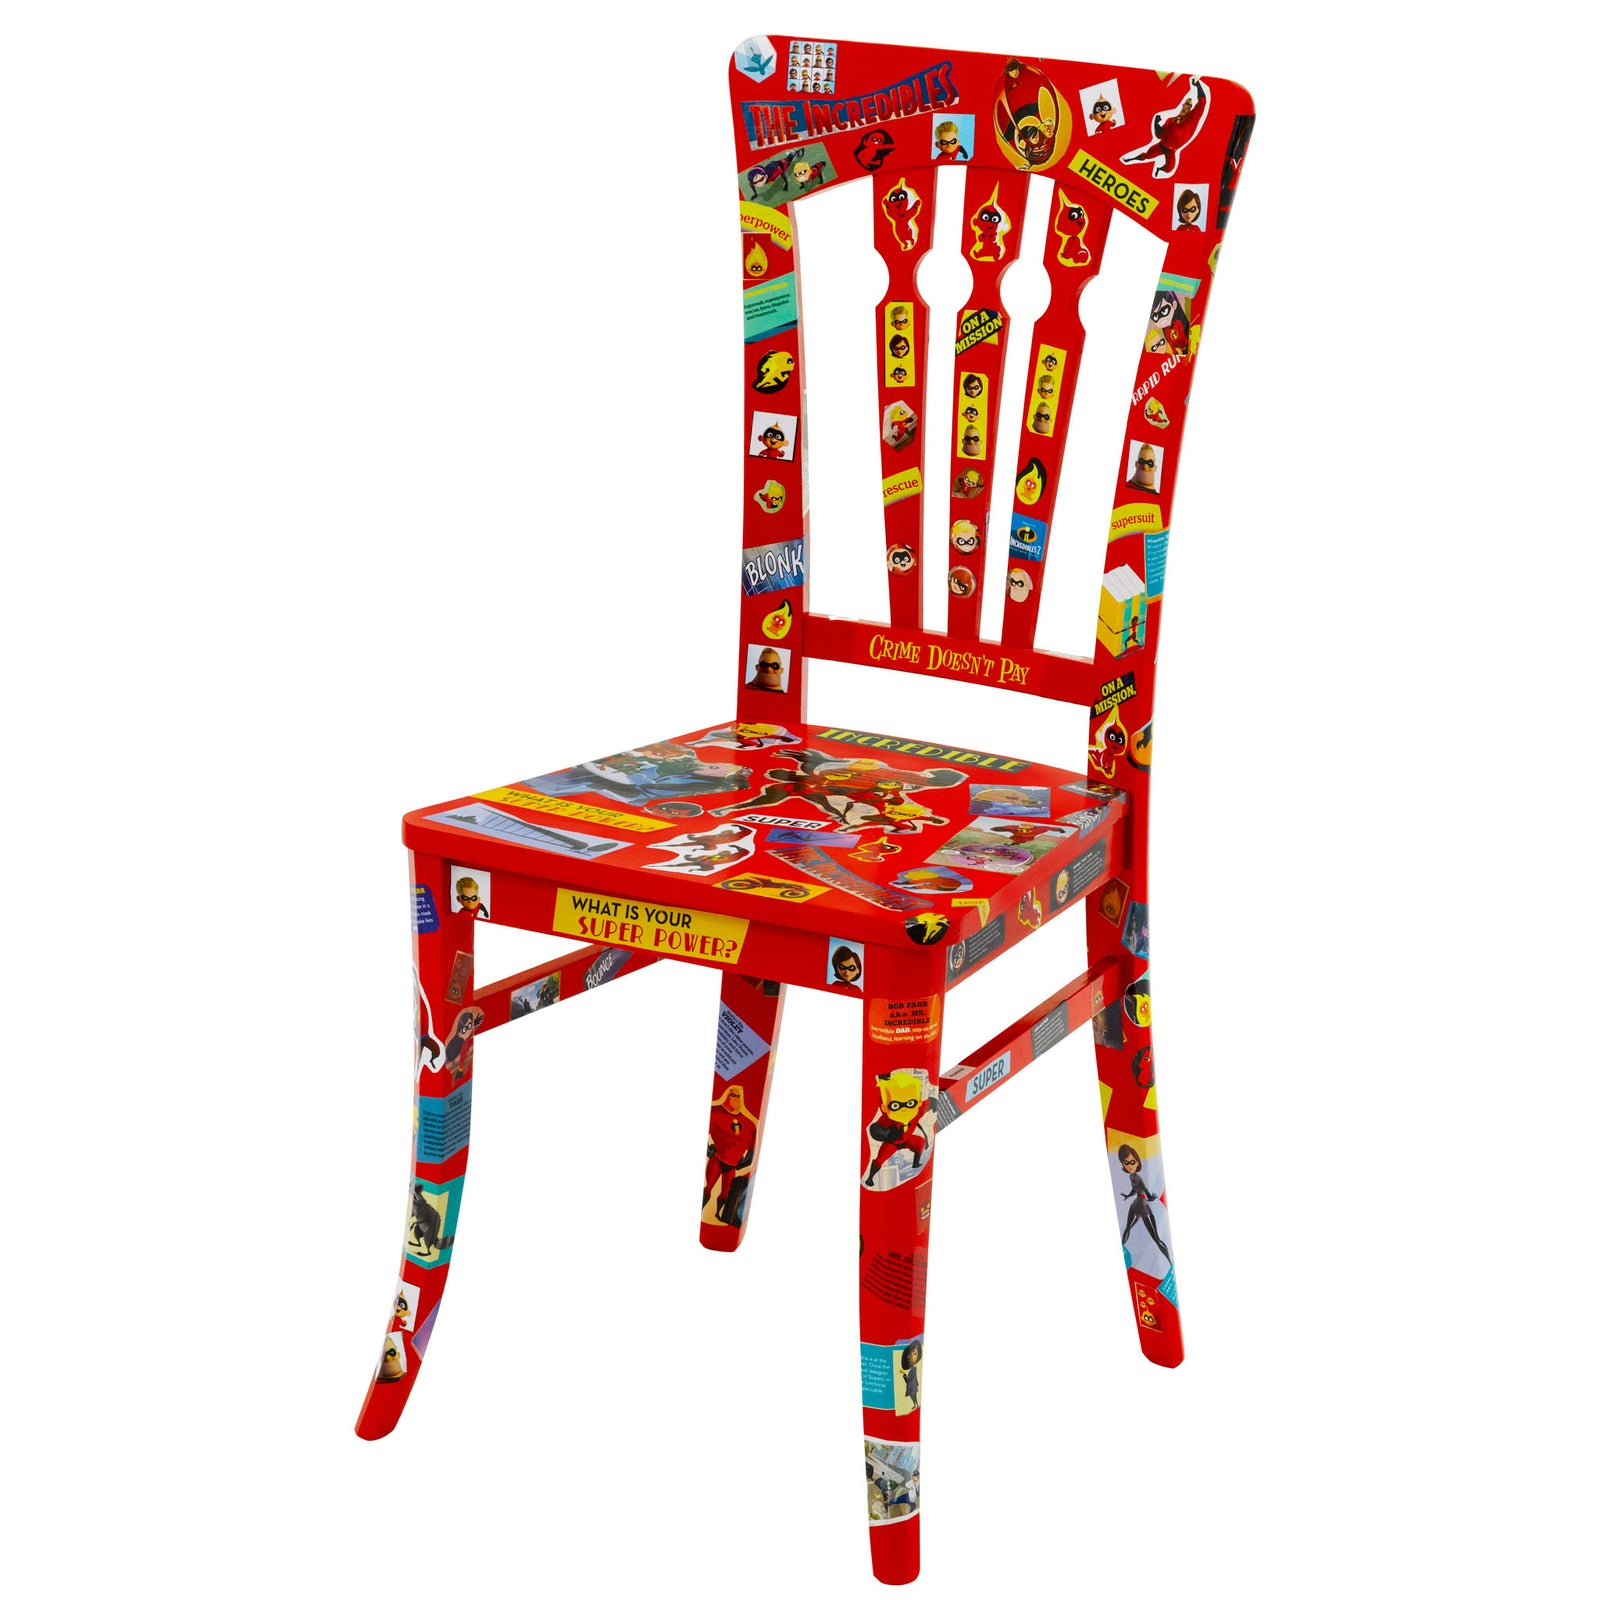 An Incredible Incredibles Decoupage Chair created with Incredible comic strips finished in red